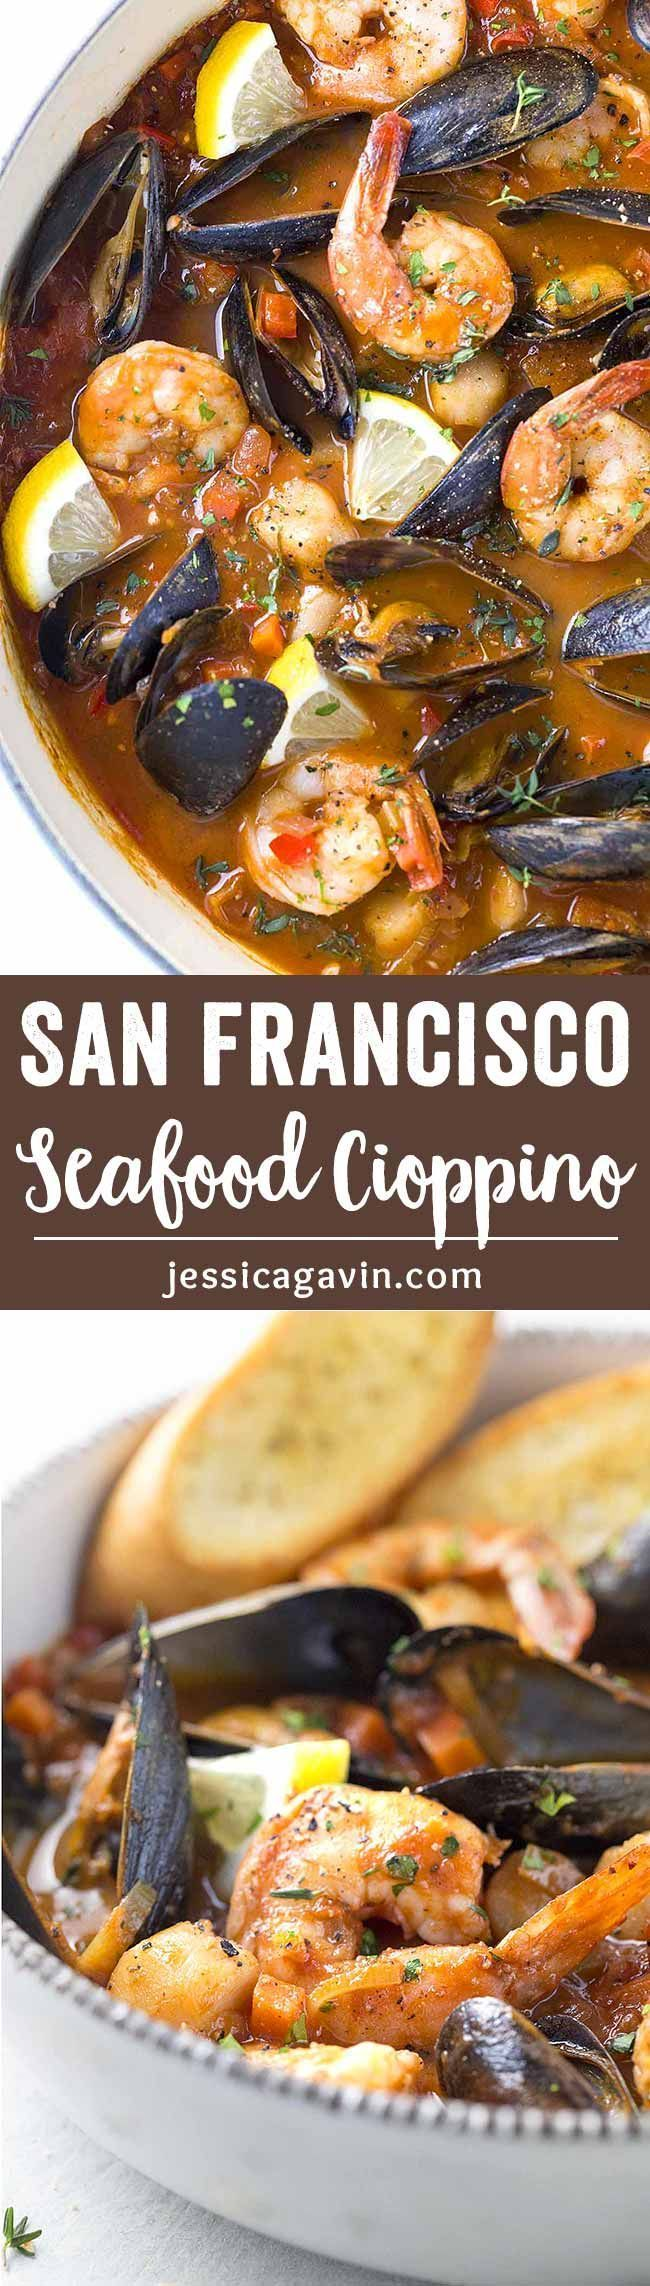 San Francisco Style Seafood Cioppino - A pot of fresh mussels, shrimp, and scallops simmered in a savory tomato and red wine broth. Served with homemade crunchy croutons!  via /foodiegavin/